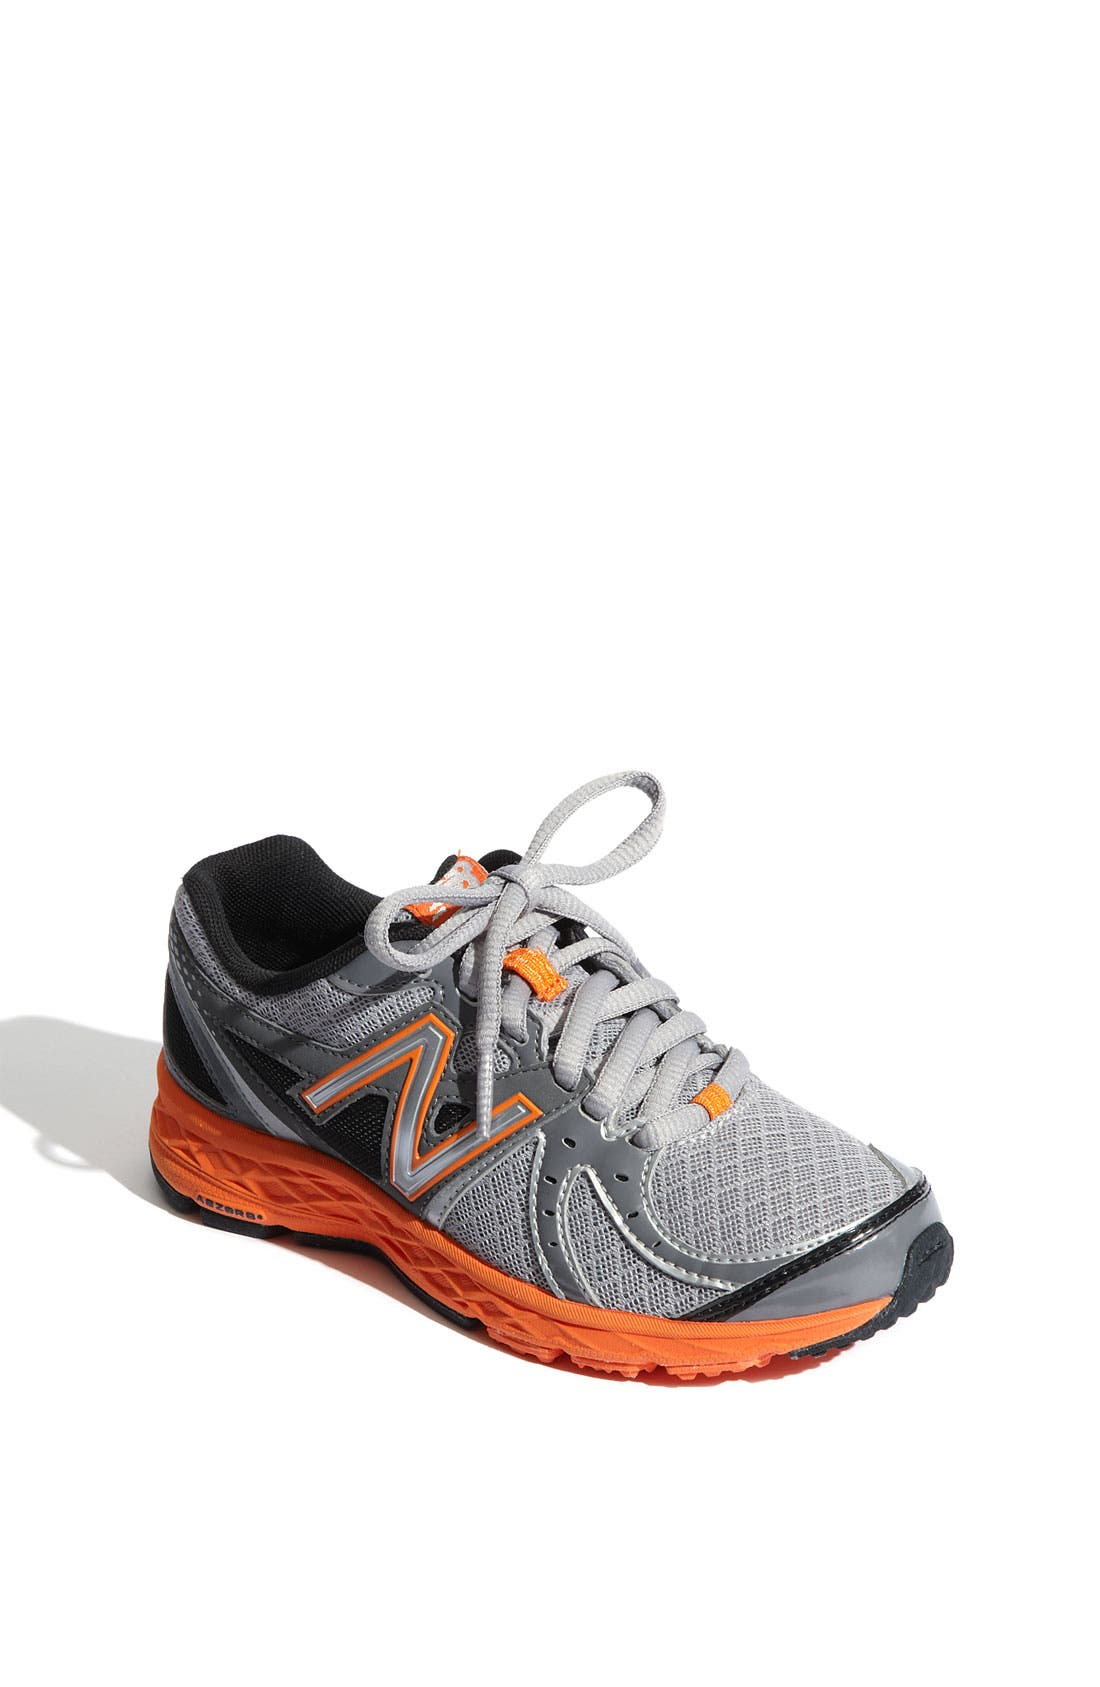 Main Image - New Balance '790' Trail Running Shoe (Toddler, Little Kid & Big Kid)